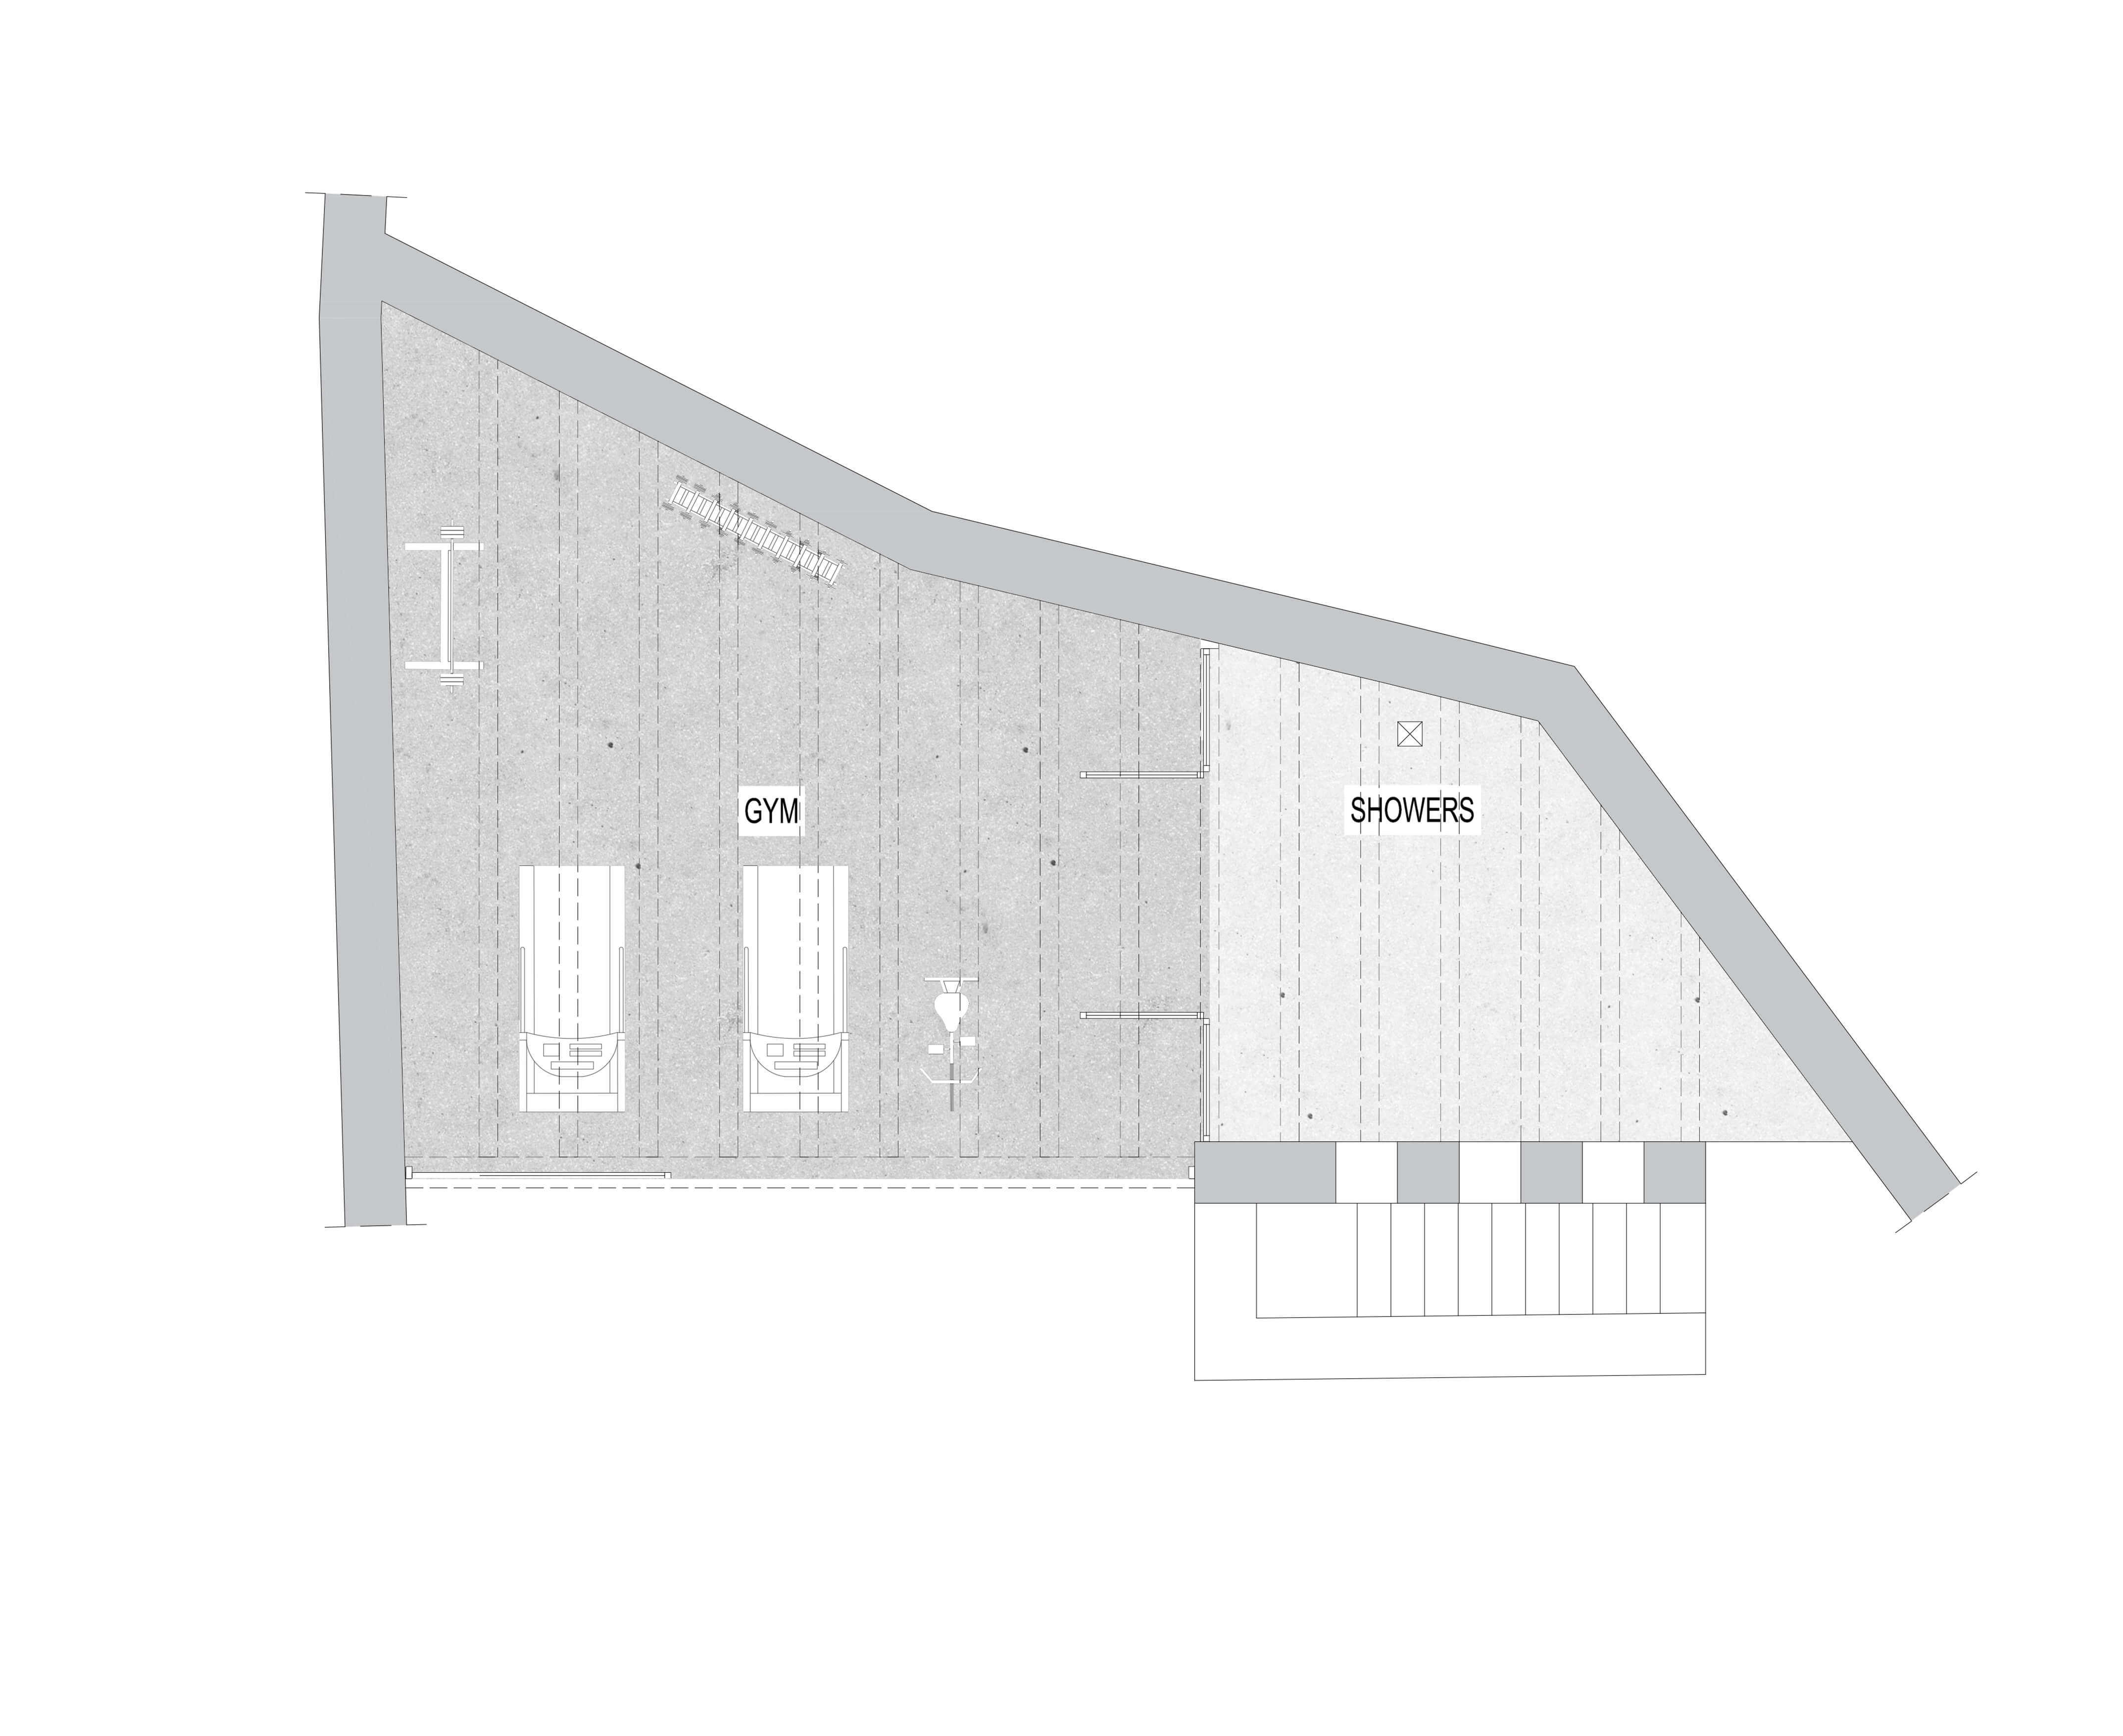 Plan of the Guest house and the Gym